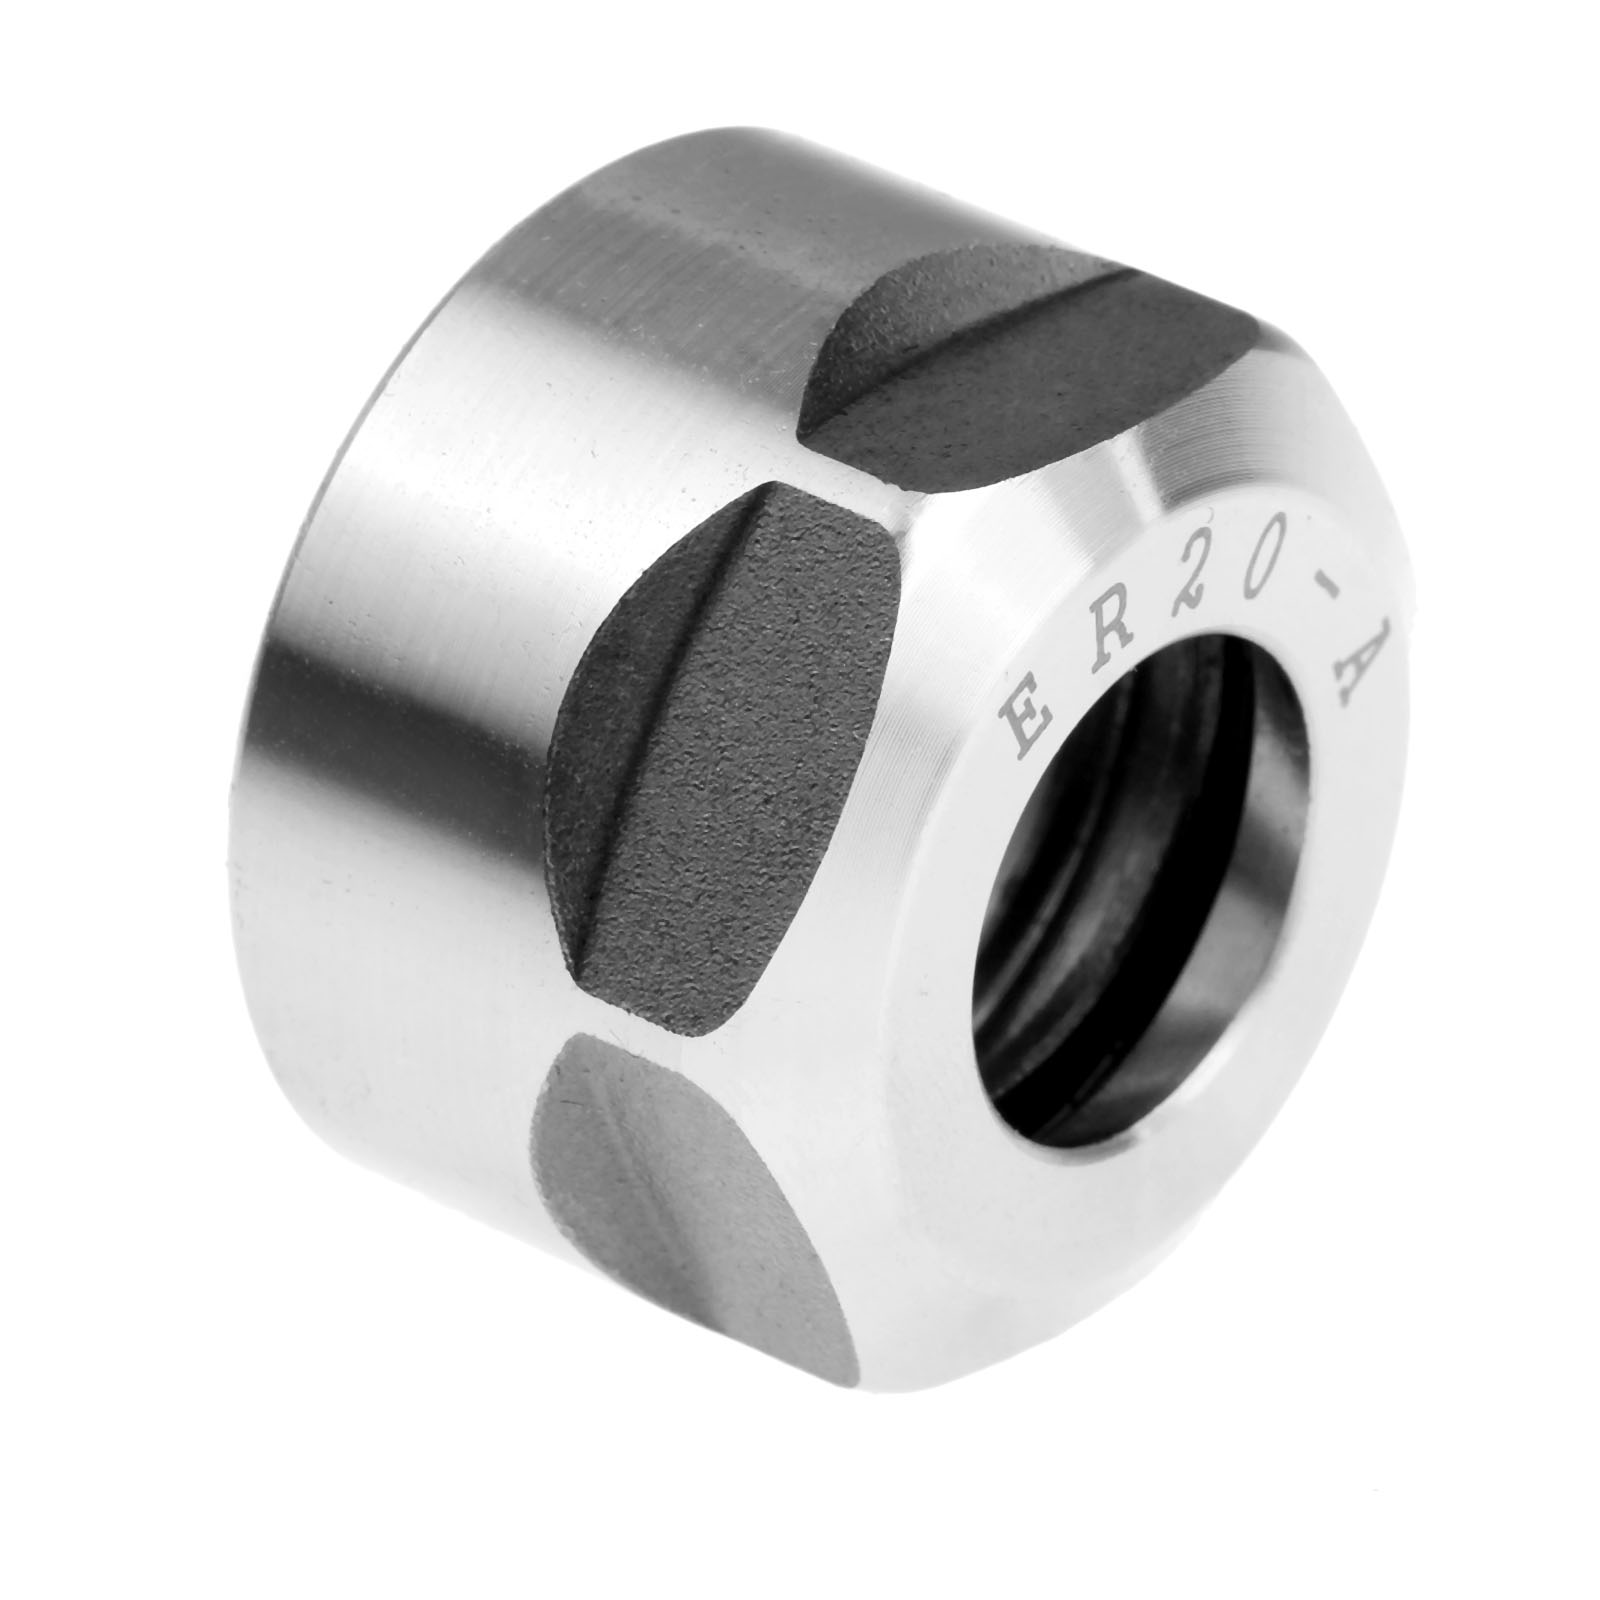 5PCS//Set ER11 A Type M14*0.75 Collet Clamping Nut for CNC Milling Chuck Holder*